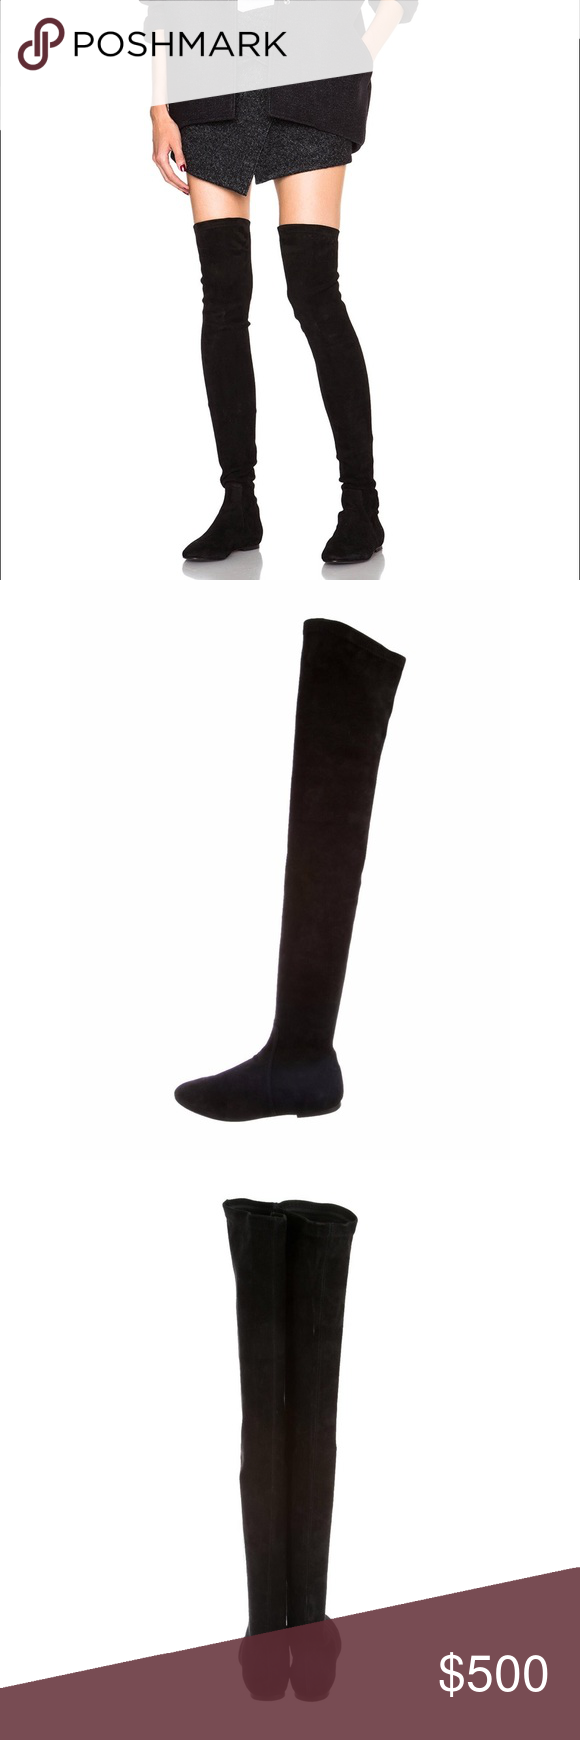 faa108ea115 ÉTOILE ISABEL MARANT BRENNA OVER-THE-KNEE BOOTS Black suede Étoile Isabel  Marant round